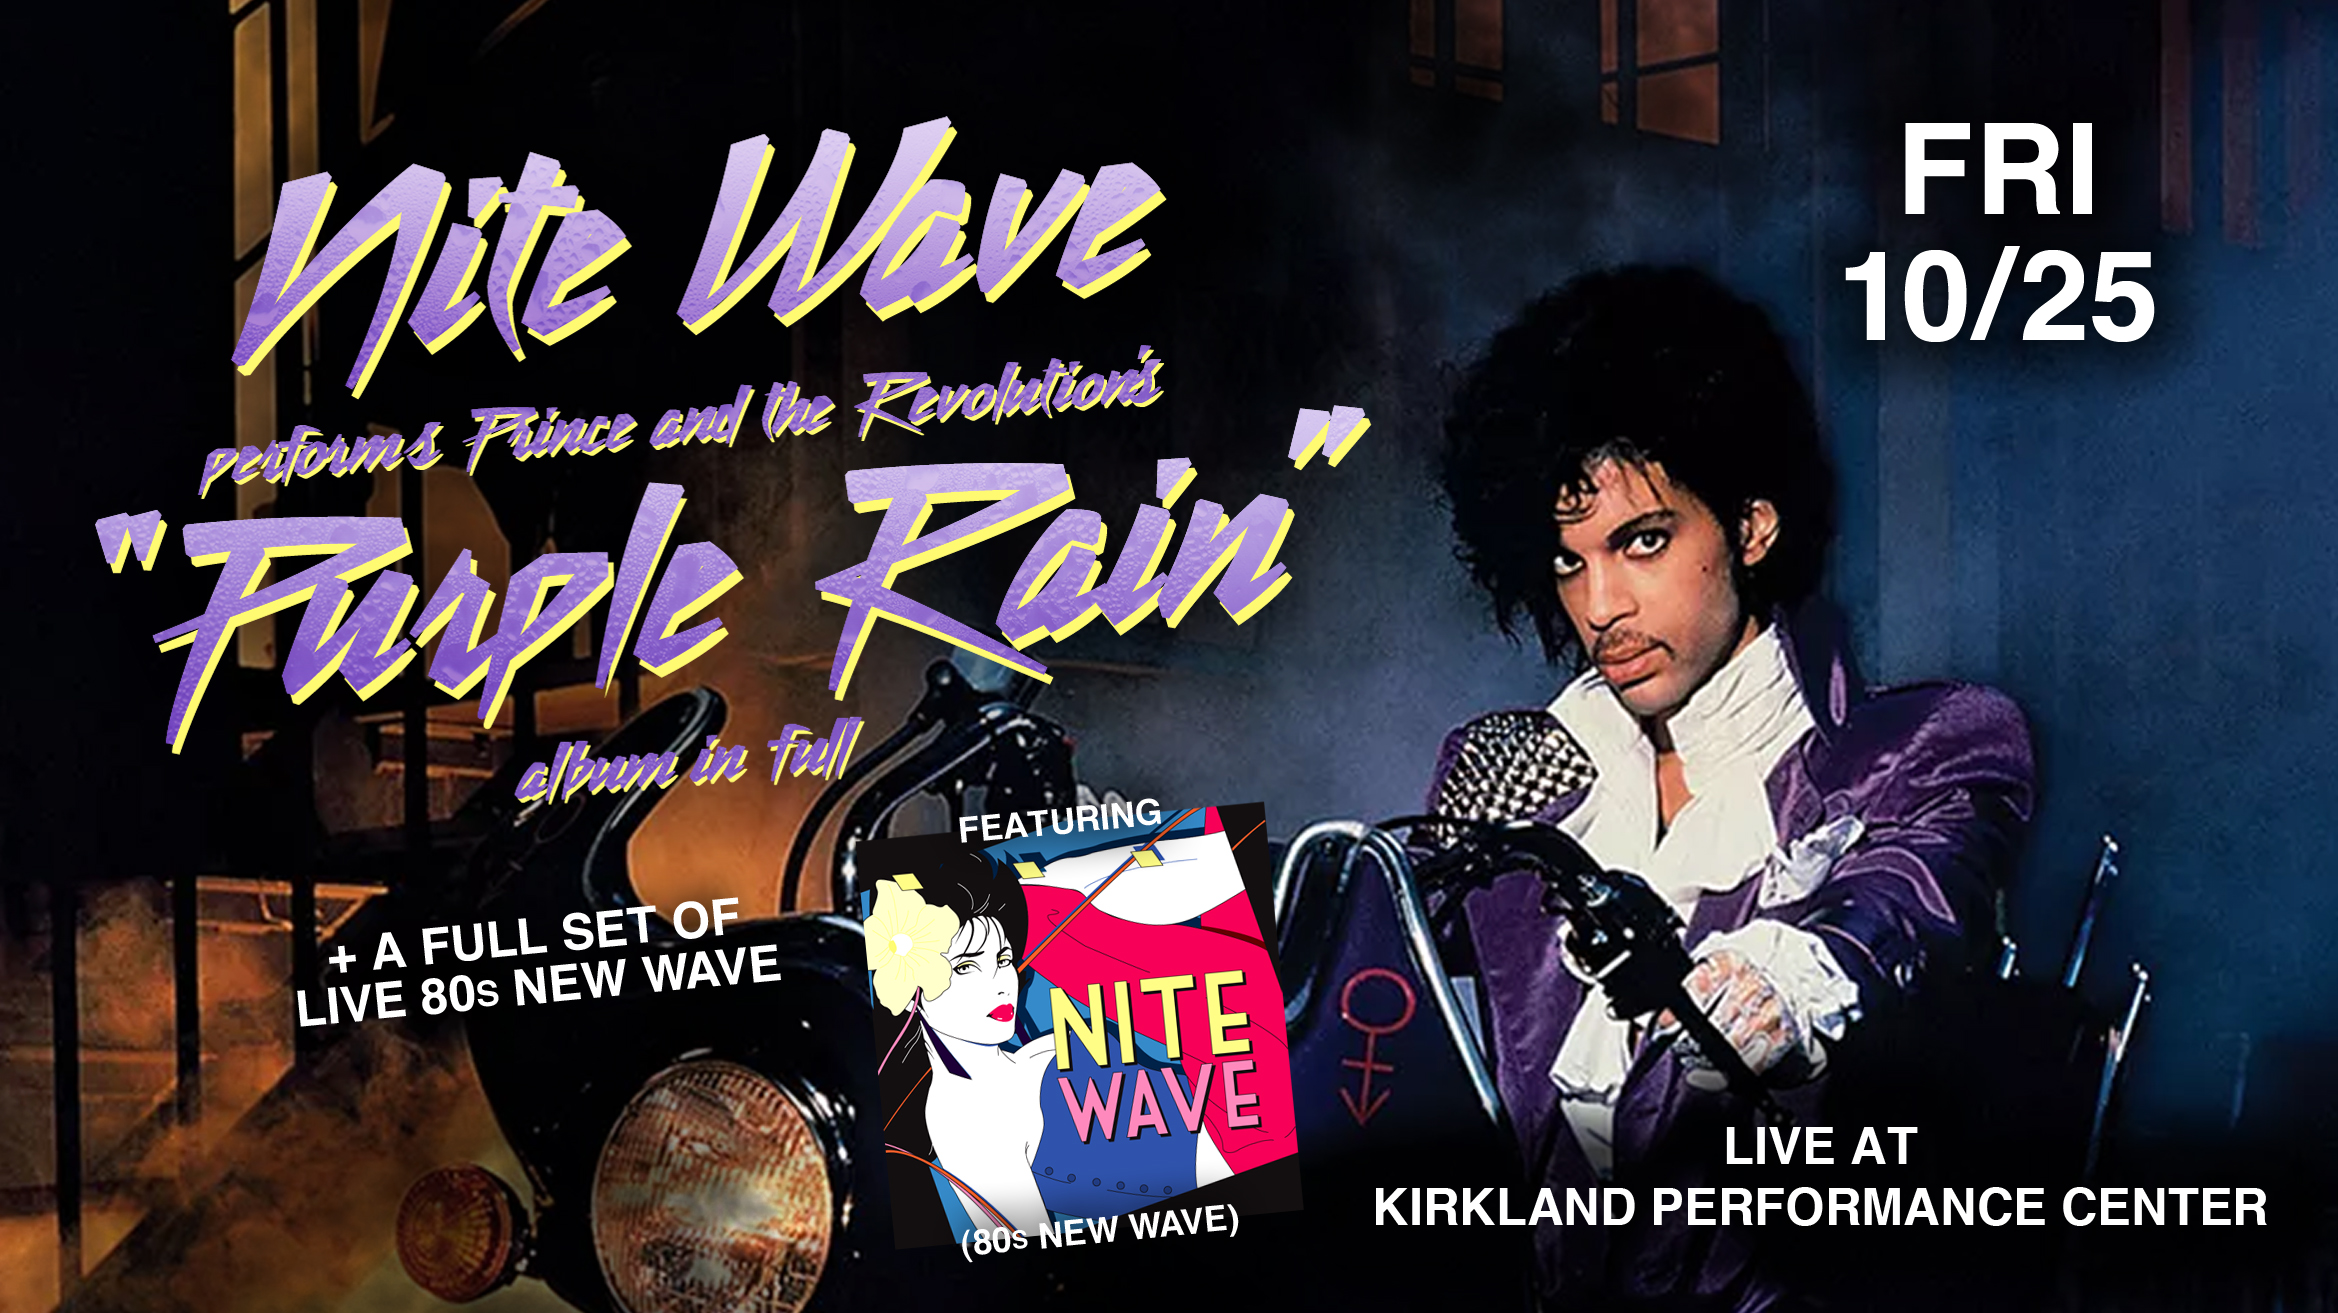 Nite Wave Performs Prince & The Revolution's